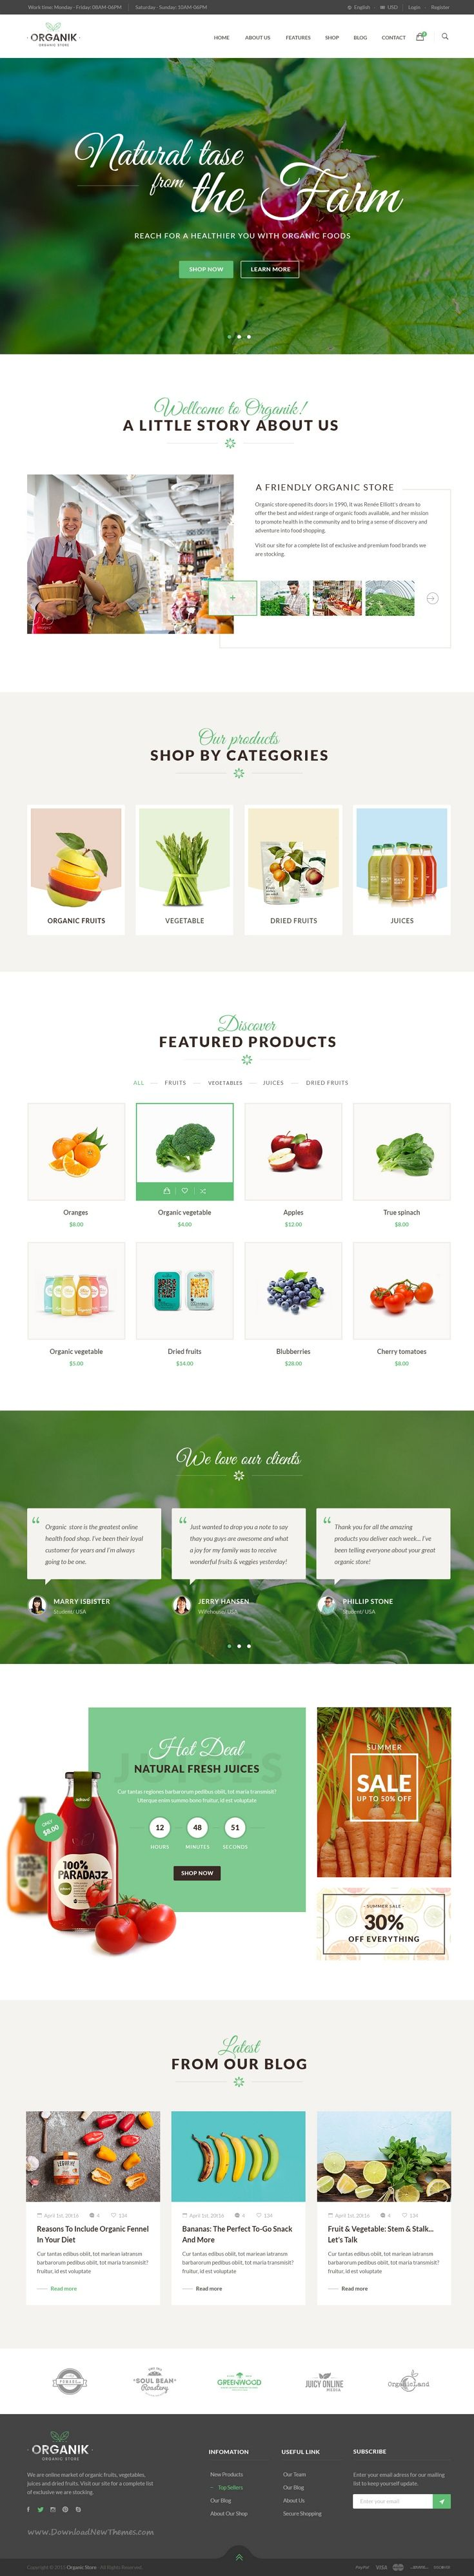 Organik is an amazing clean PSD template for #Organic Food #Shop #websites. Download Now!